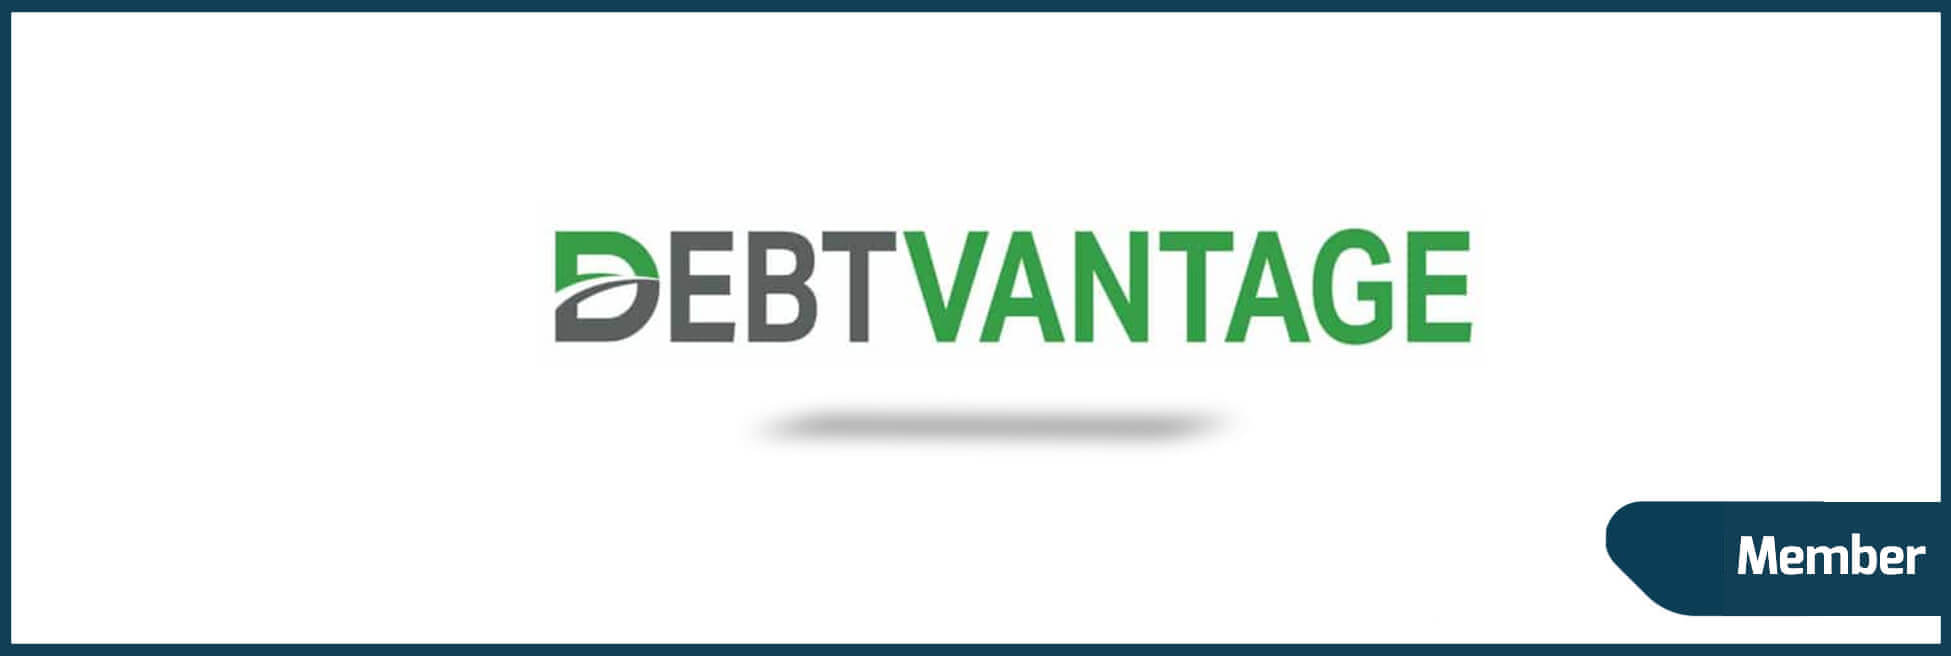 Debtvantage, Inc.